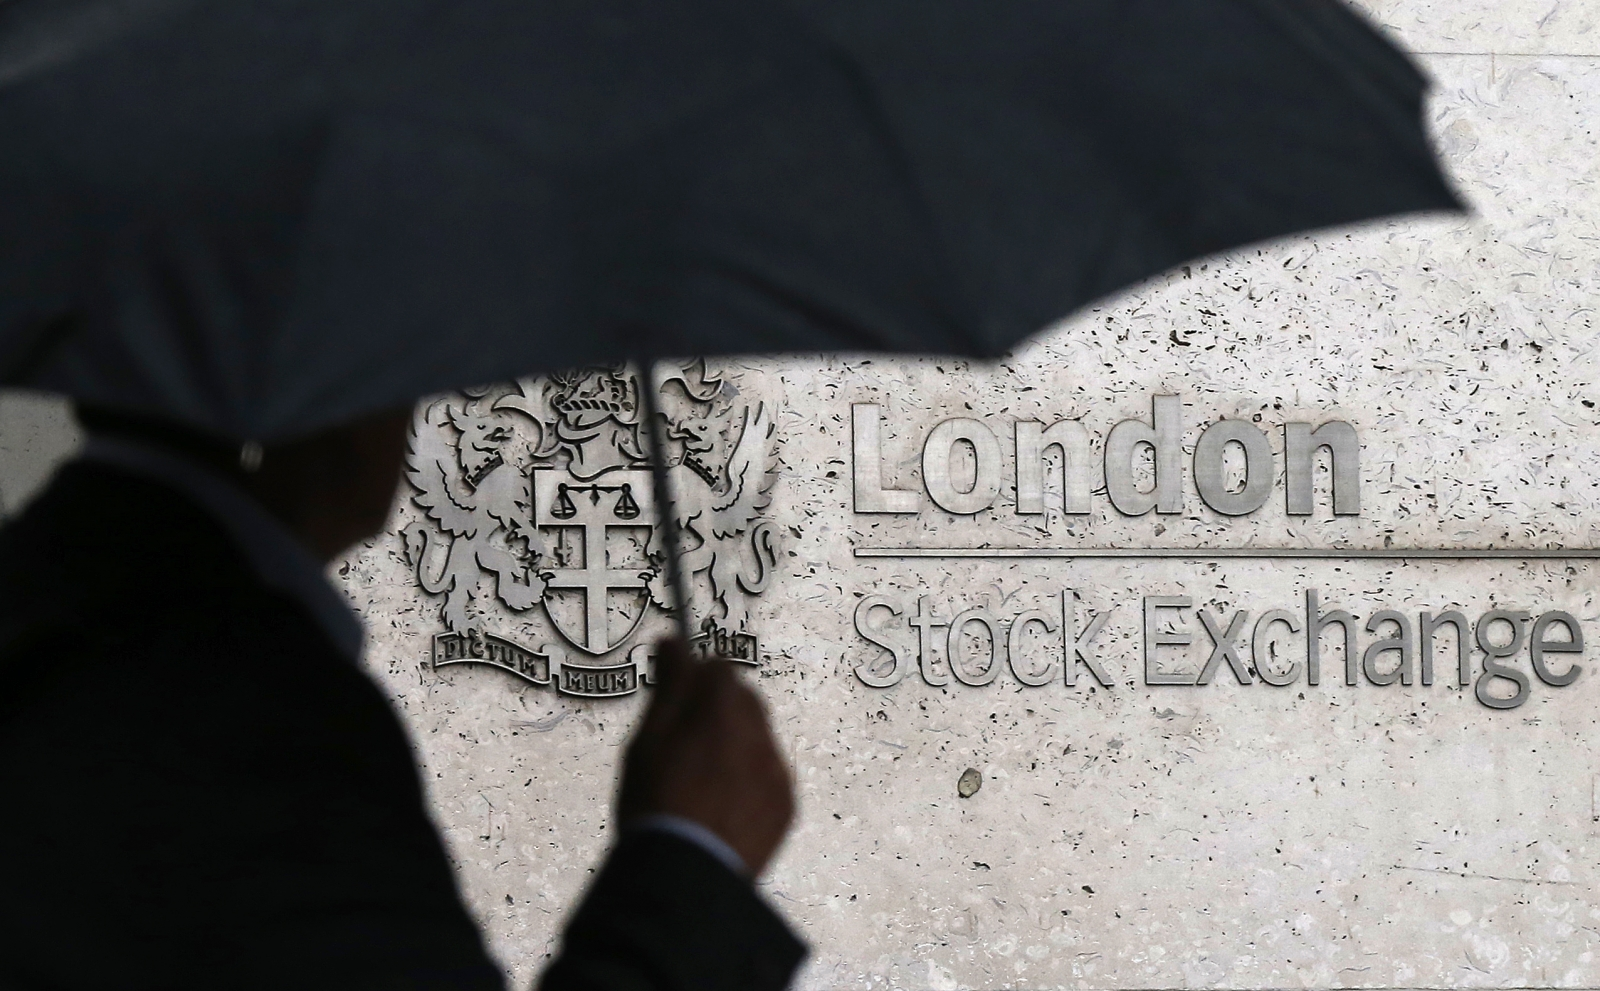 London Stock Exchange and Deutsche Borse merger to result in redundancies of 1,250 employees